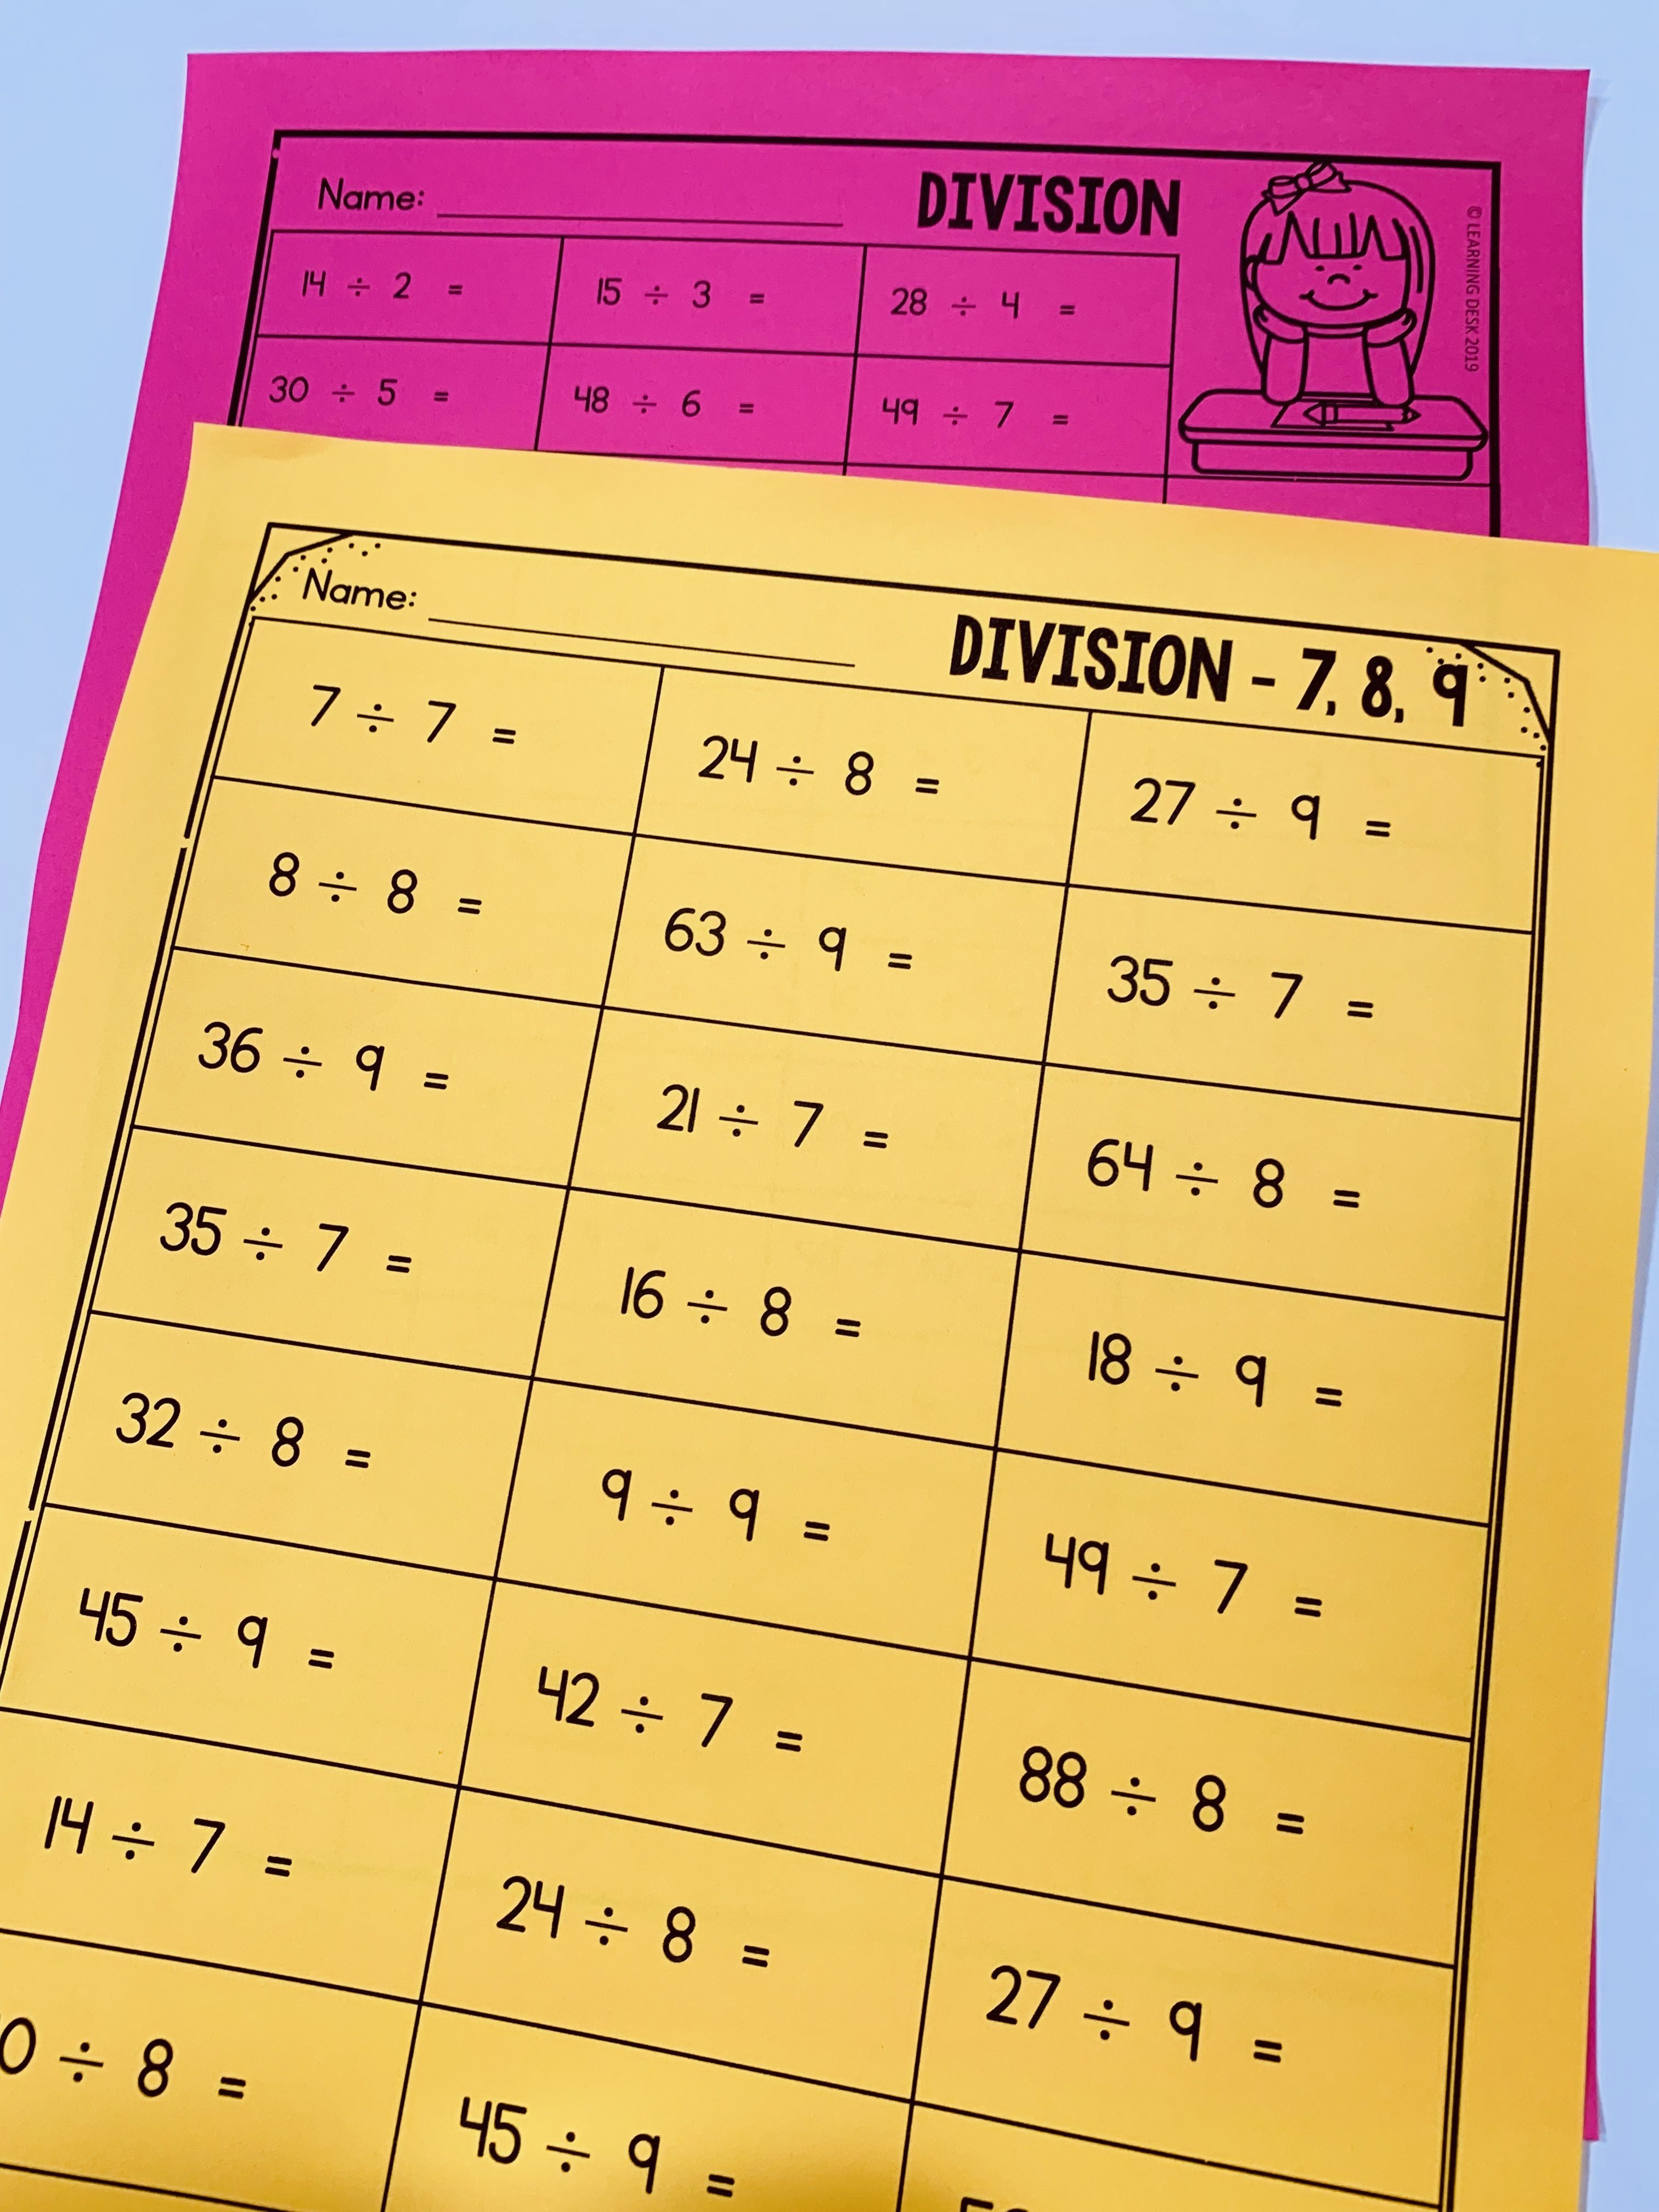 Division Facts Practice